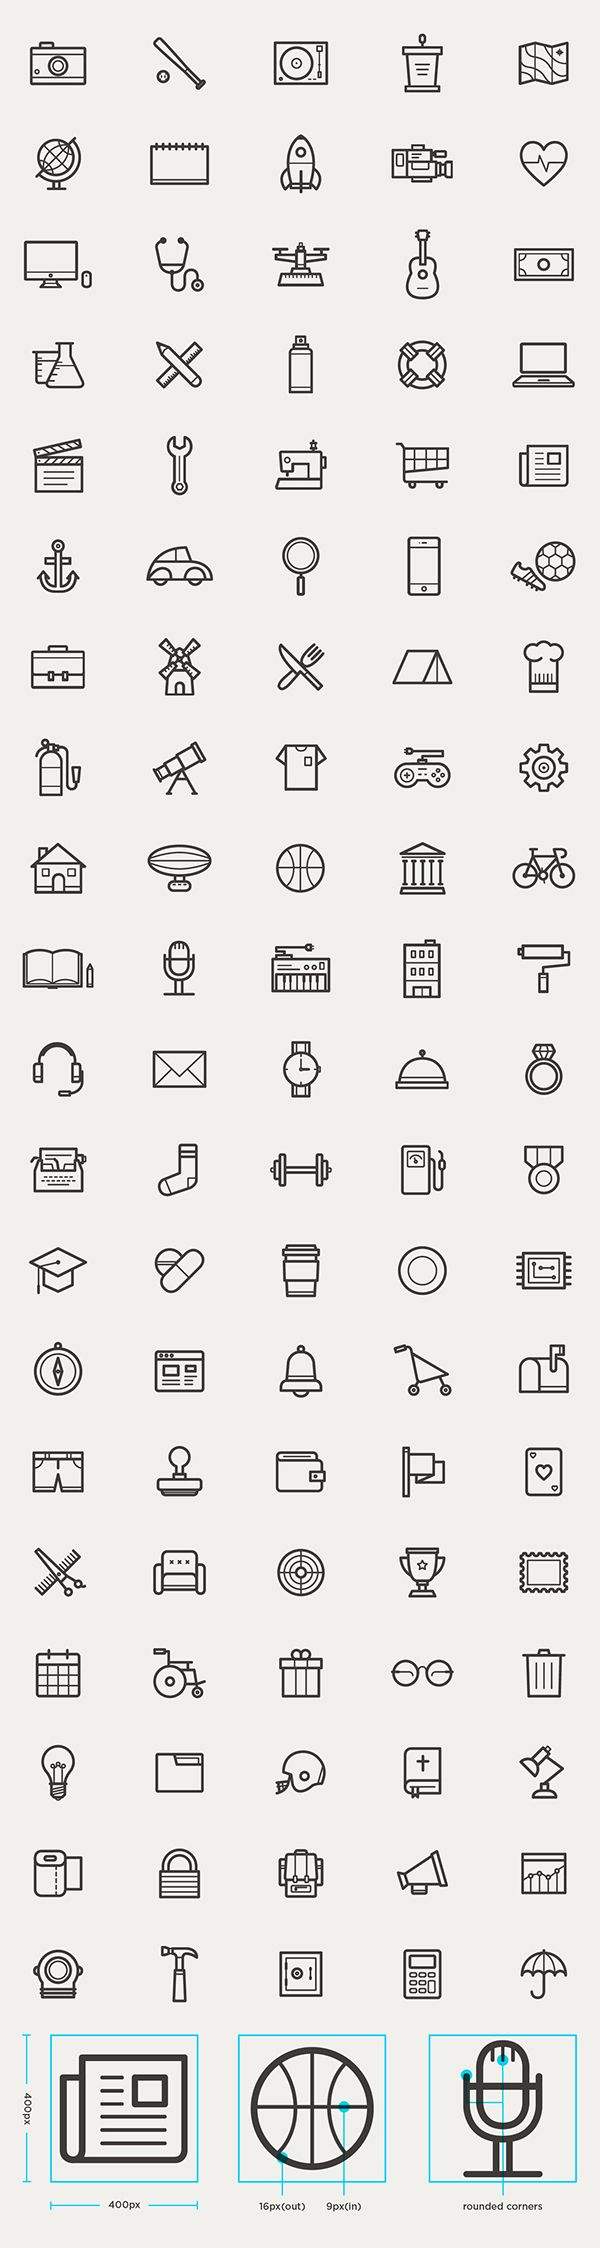 Free Outline Icons Set (95 Icons)